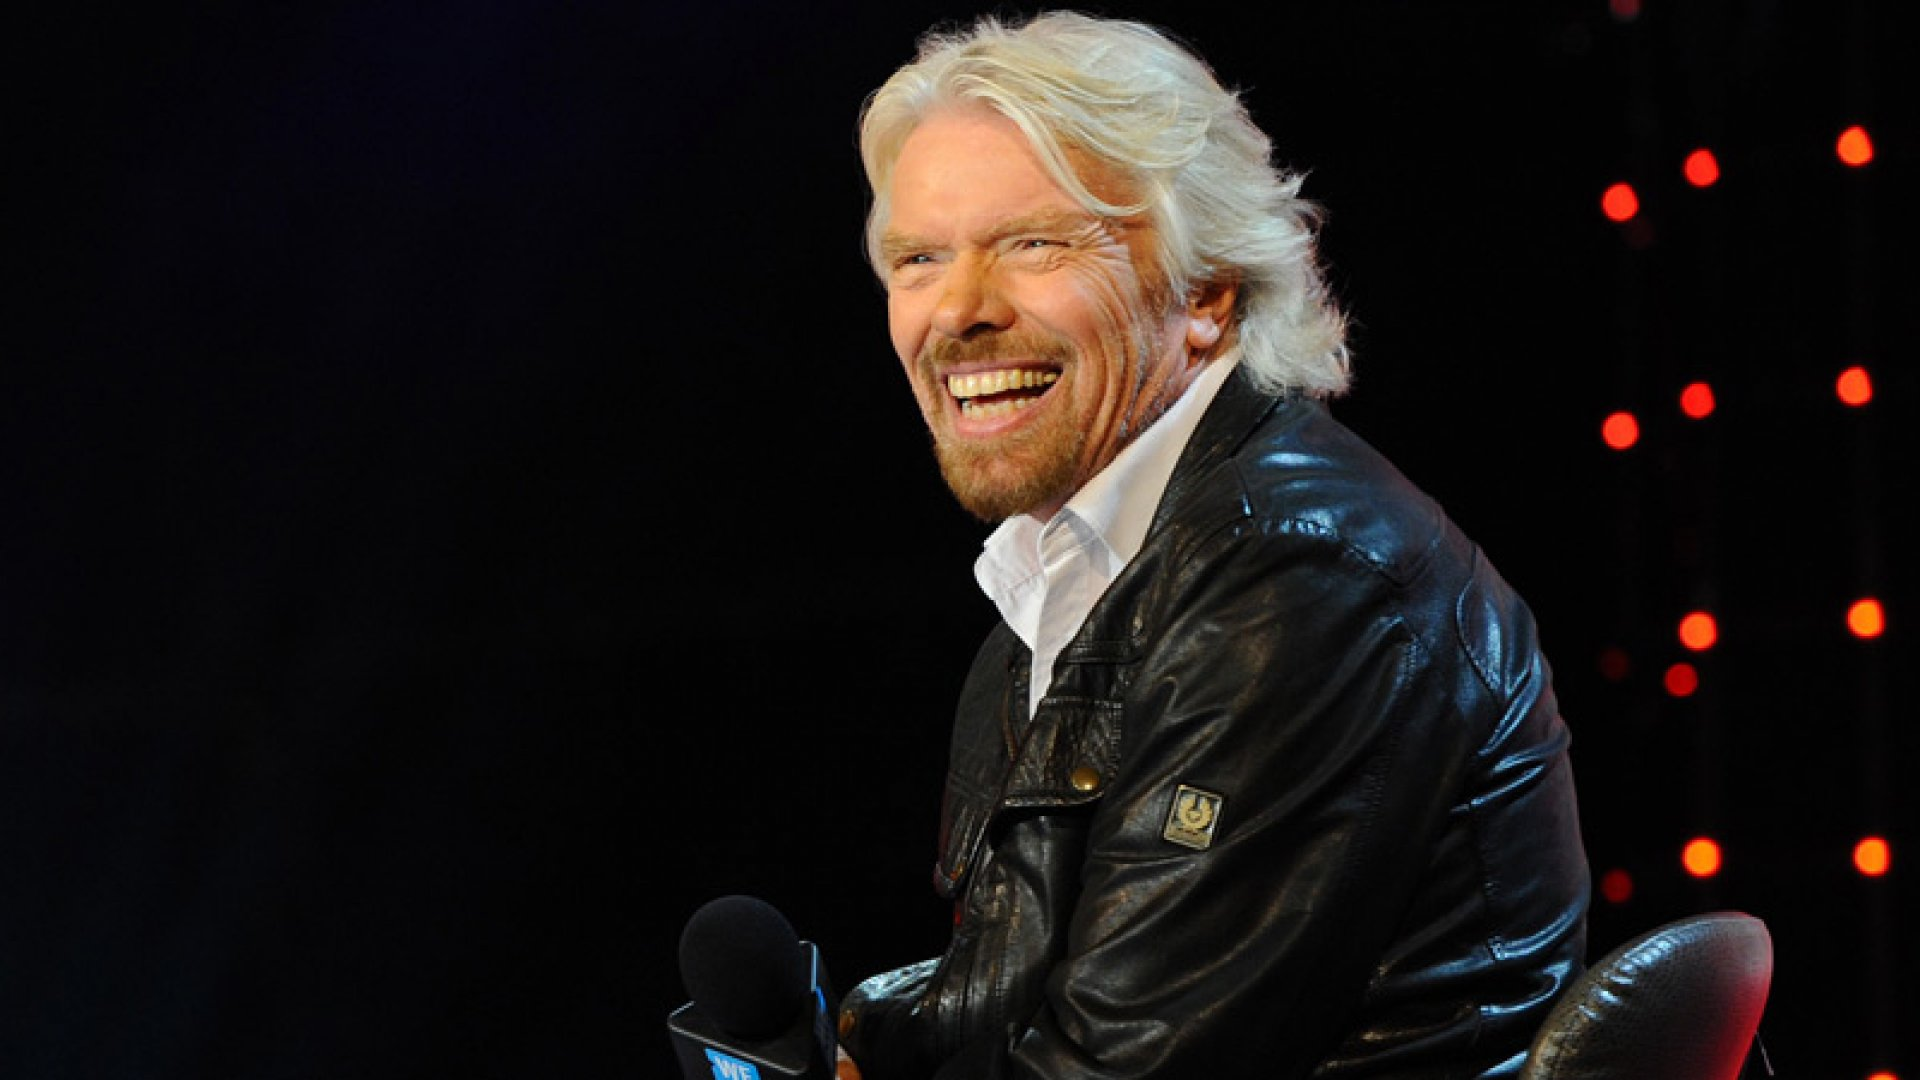 Richard Branson on Why Virgin Will Never Seek Bankruptcy Protection